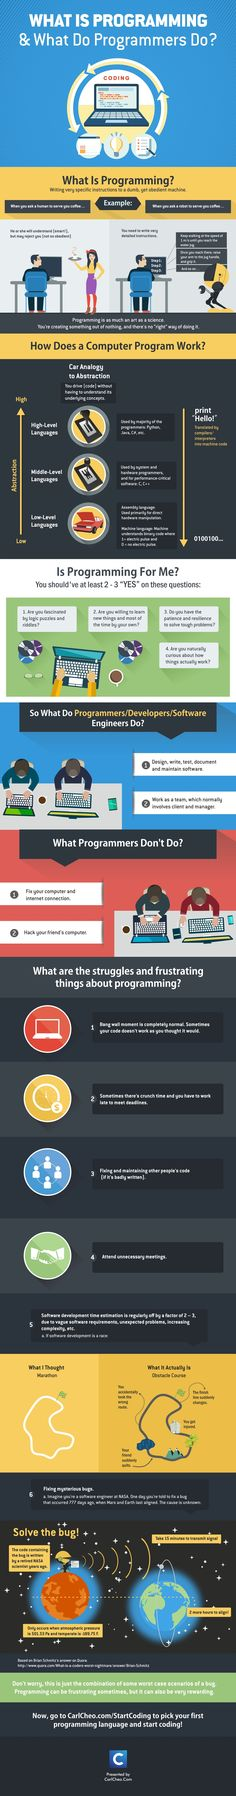 What Is Programming And What Do Programmers Do? [Infographic]